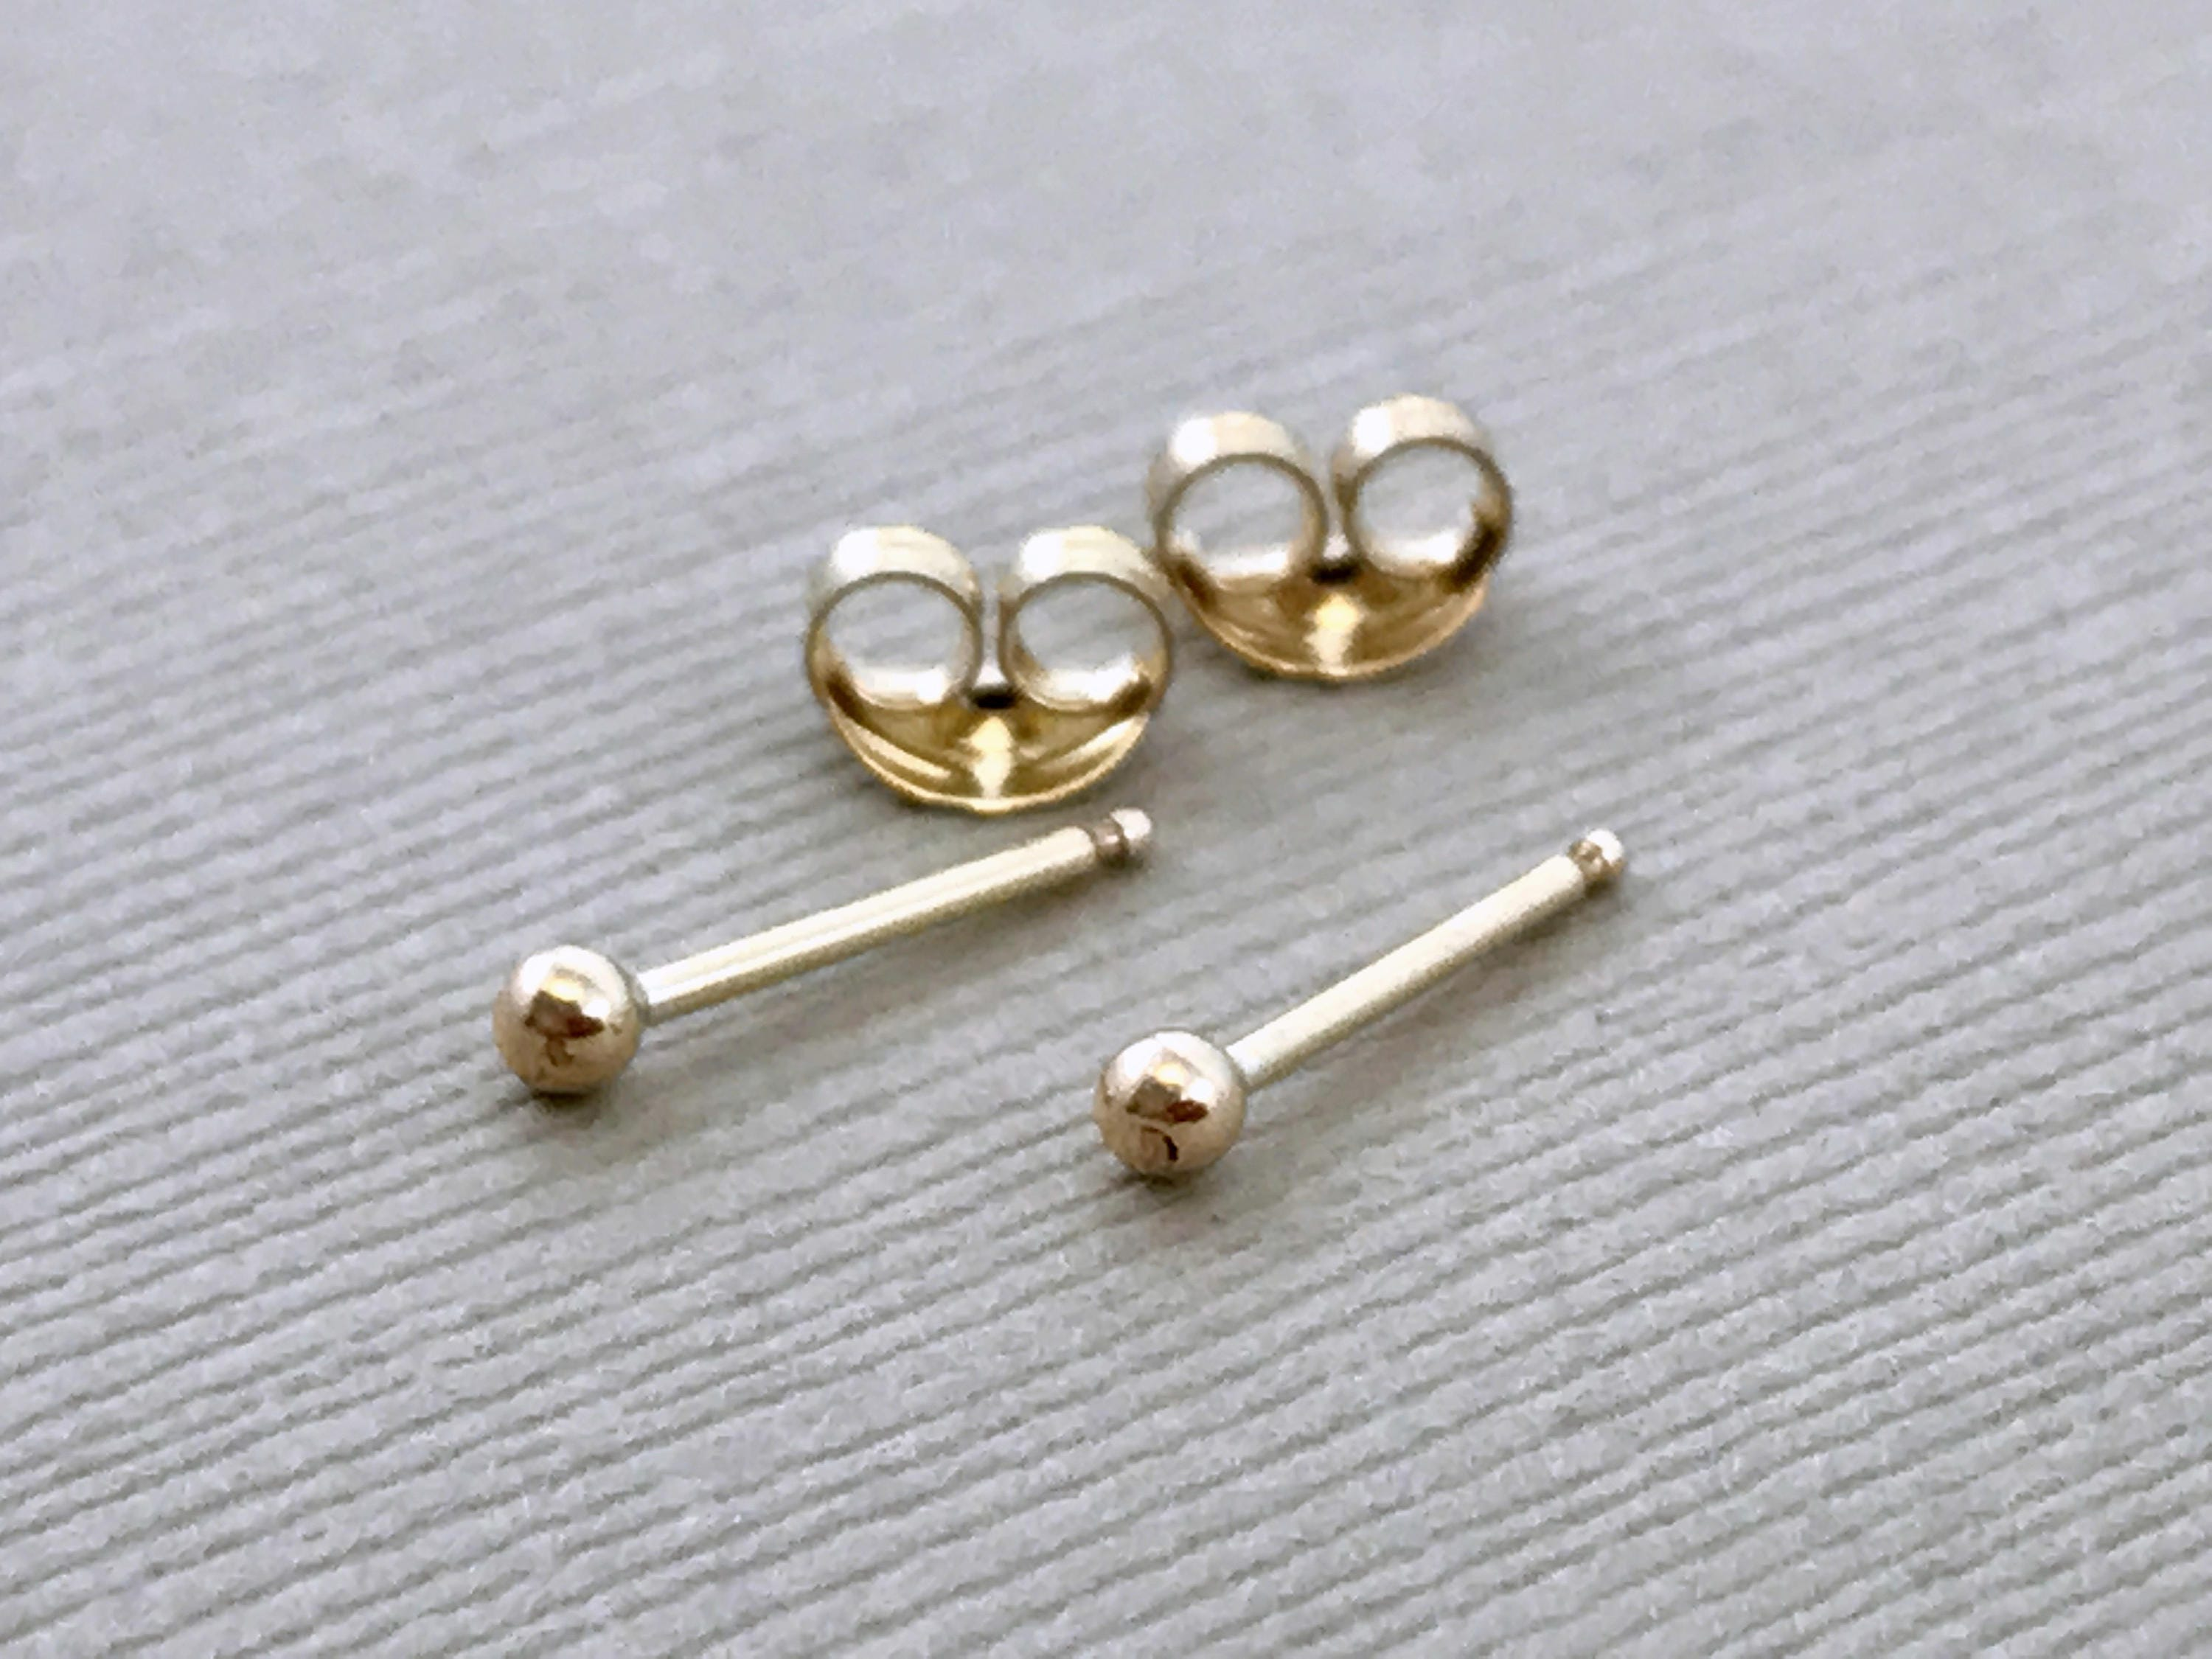 fba rose gold small earrings products beauniq ball bmd stud